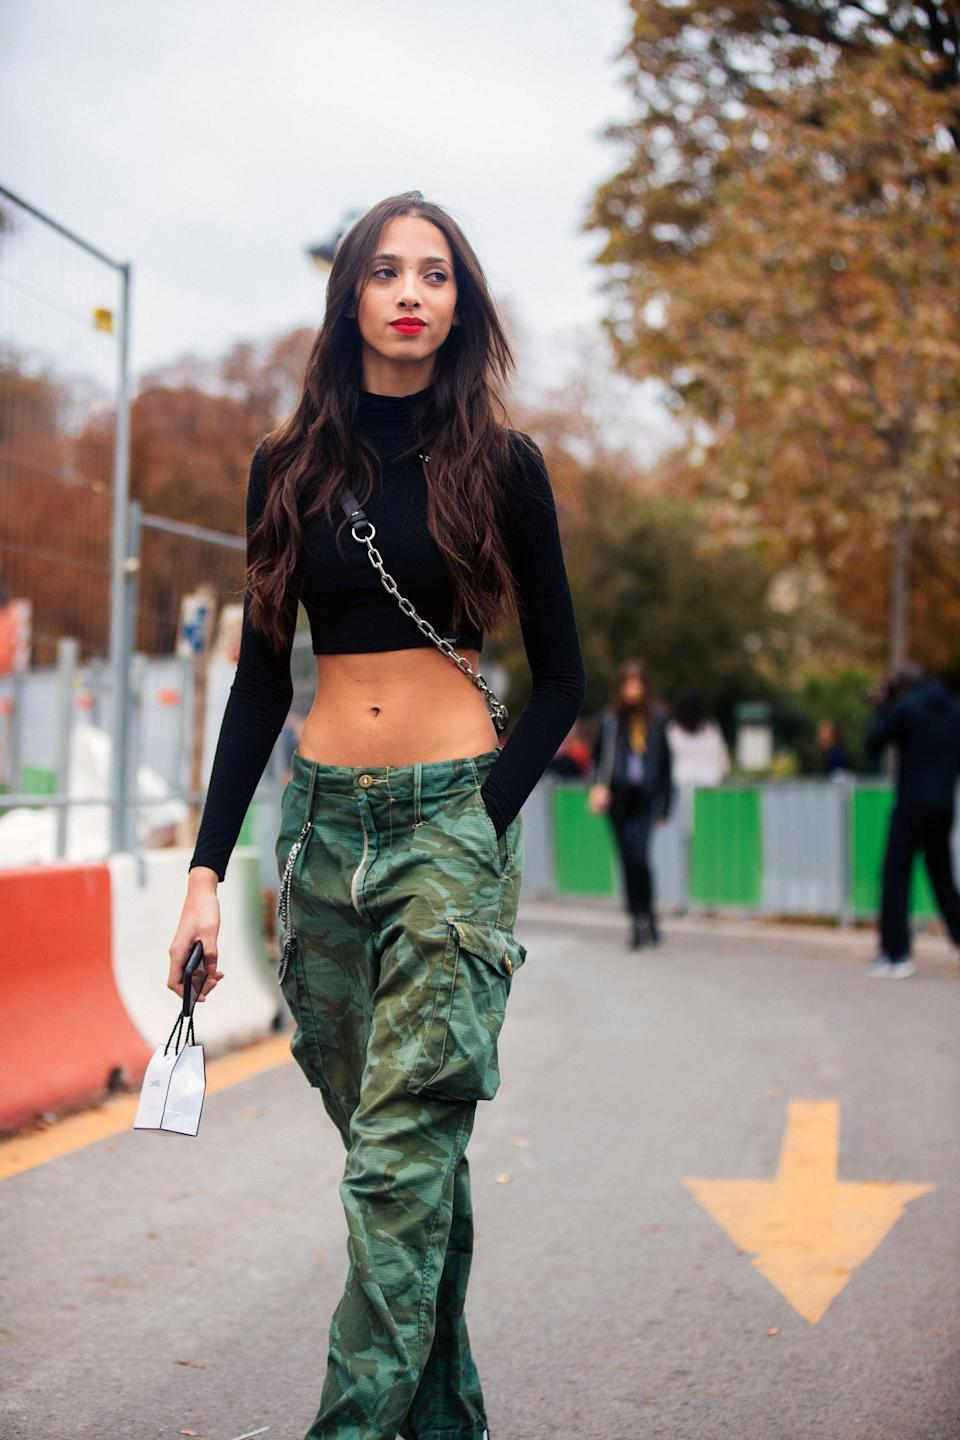 <p>. . . Or lean into the early 2000s vibes with camo cargos and a cropped top. </p>